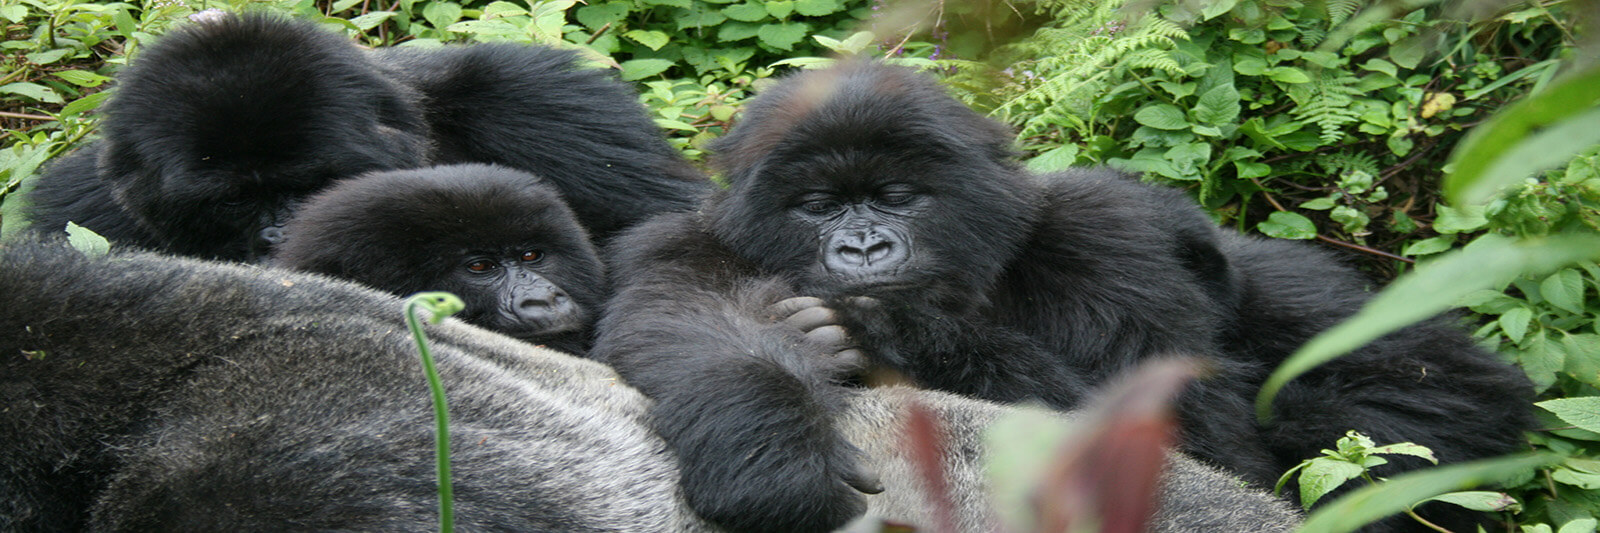 Mountain gorillas in northern Rwanda